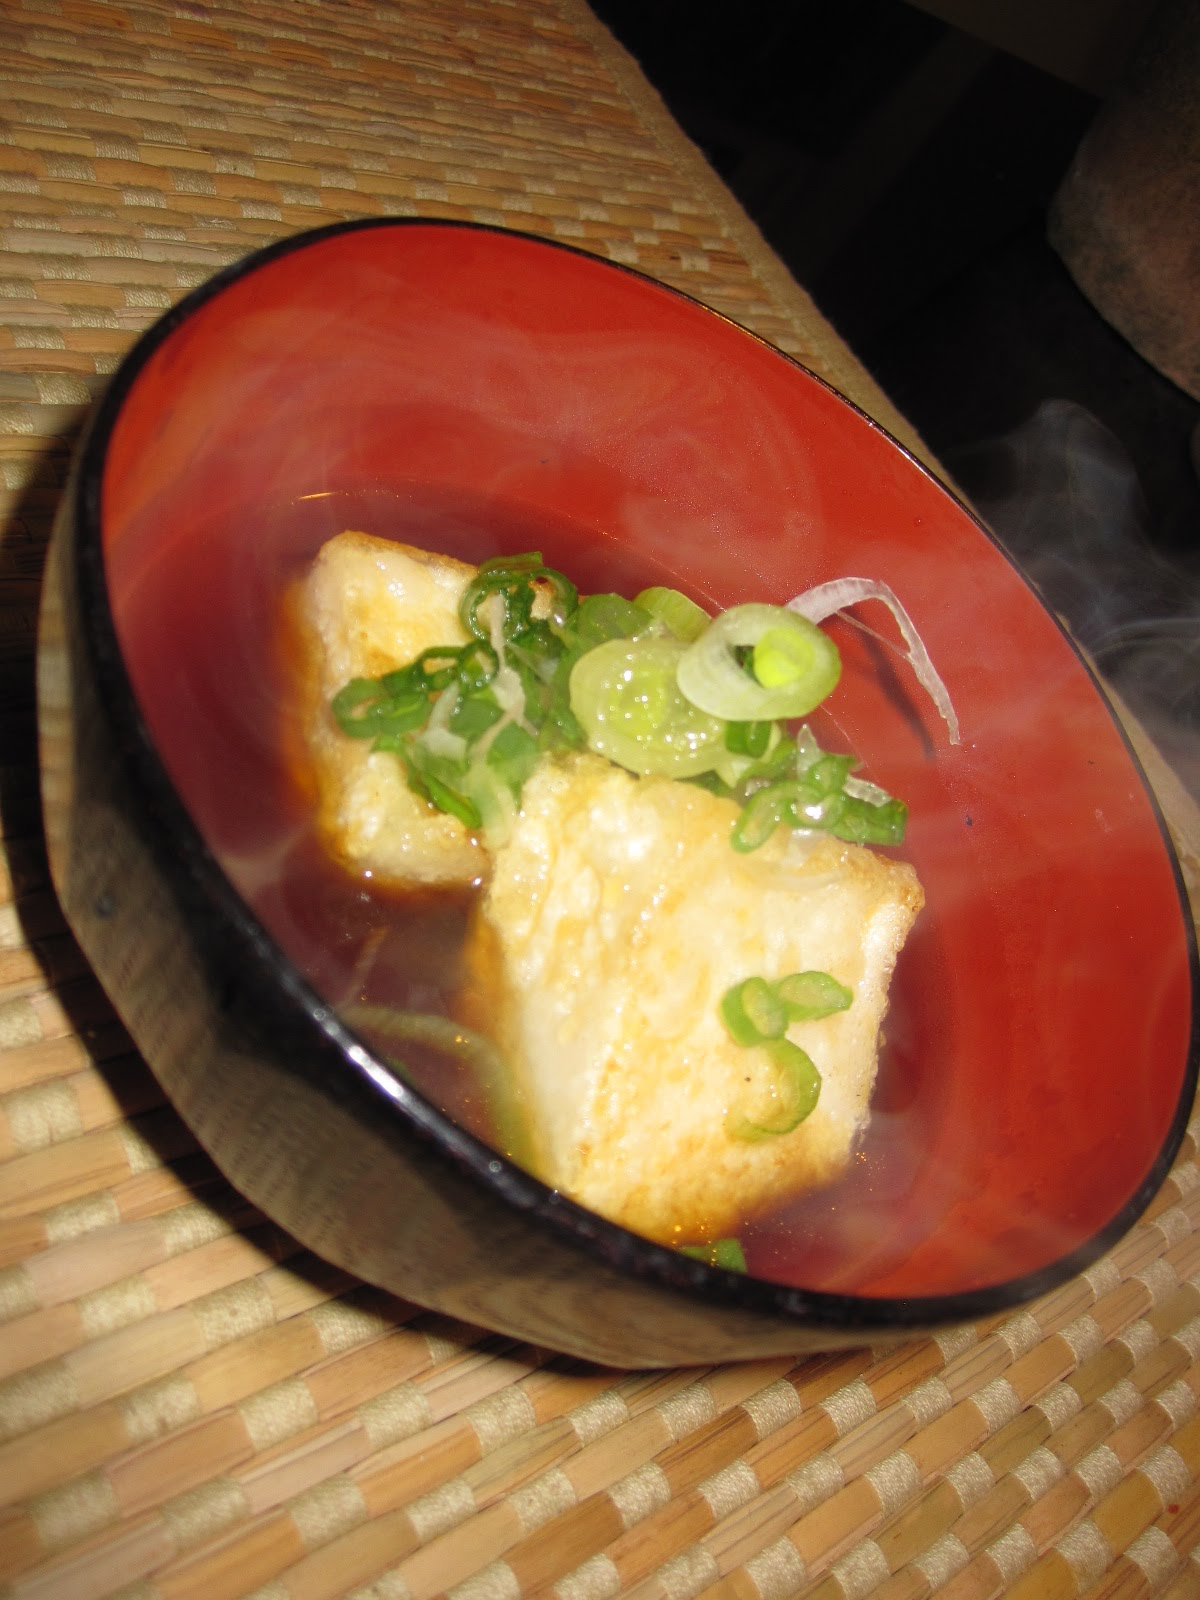 Agedashi tofu is common tofu dish served in dashi sauce. Many Japanese ...